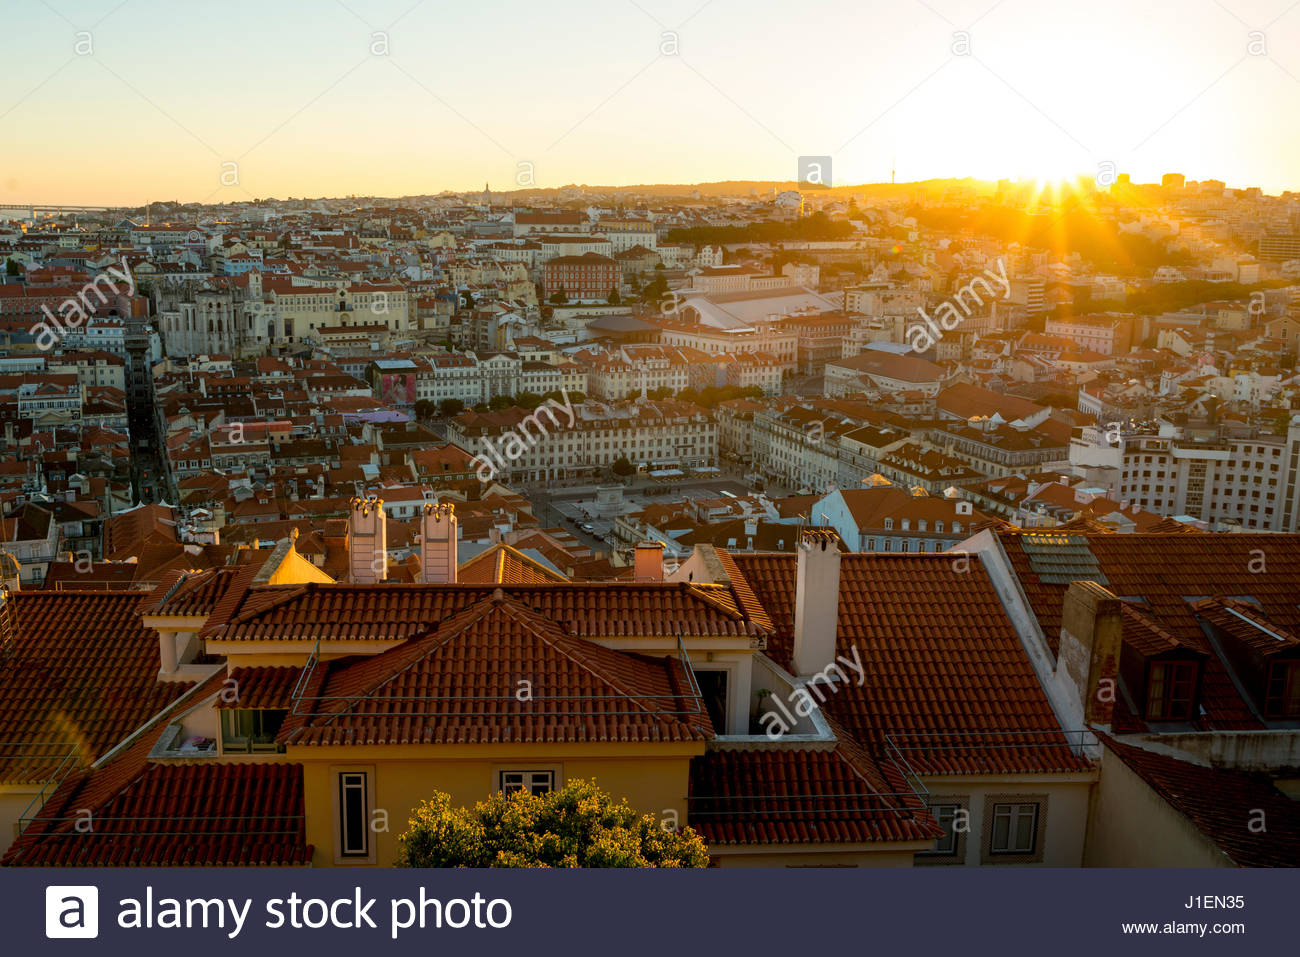 Sun shines over the roofs of Lisbon. - Stock Image